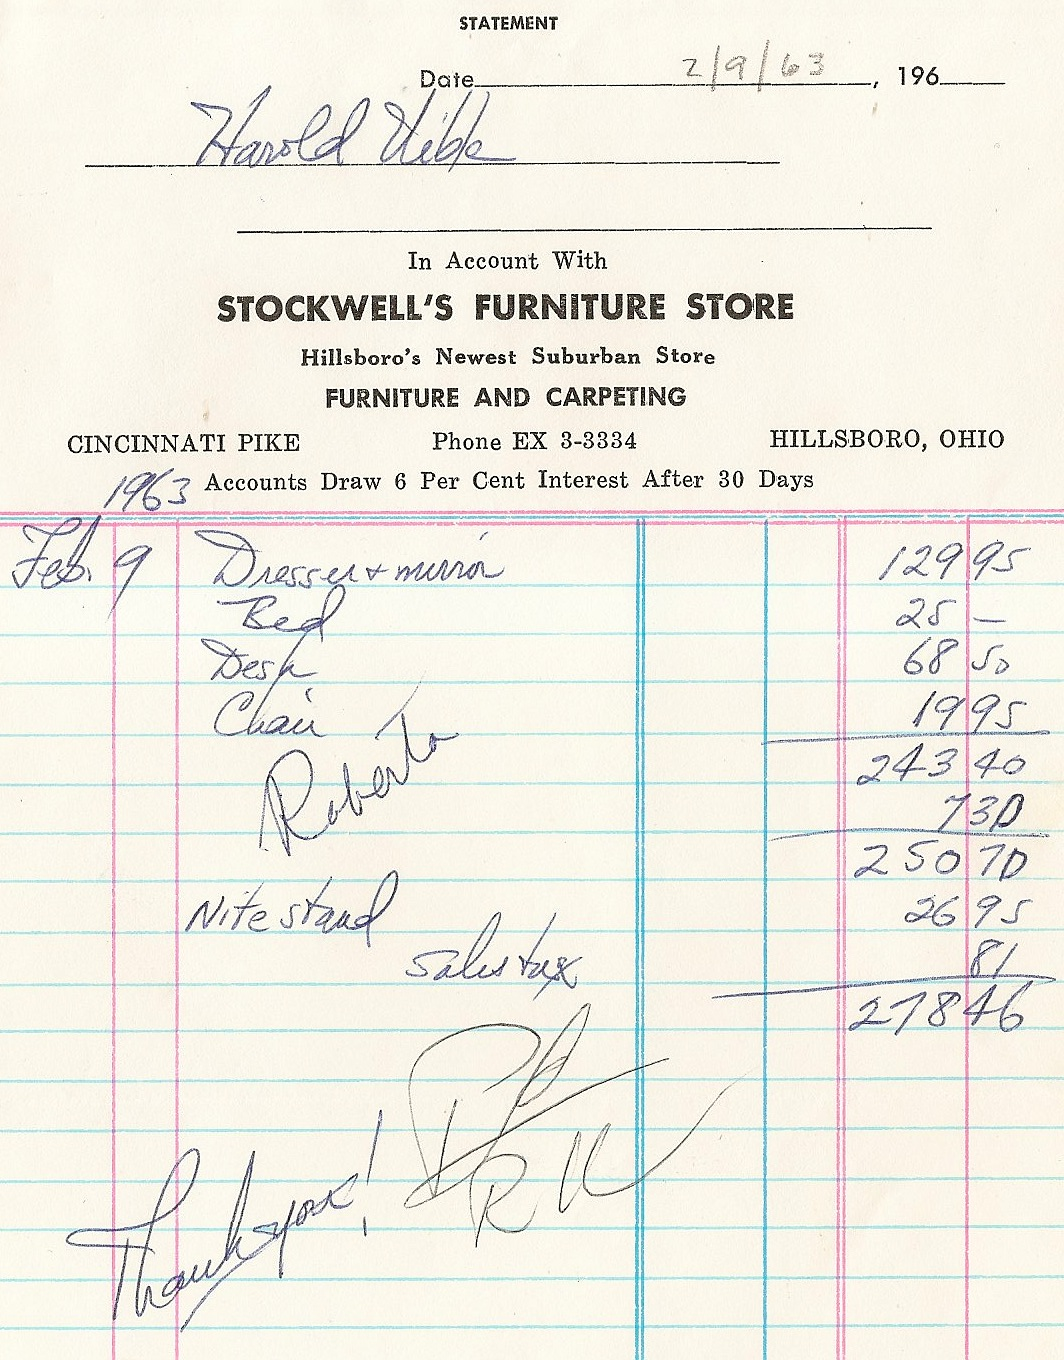 uibles a family blog 1963 furniture invoice feb 9